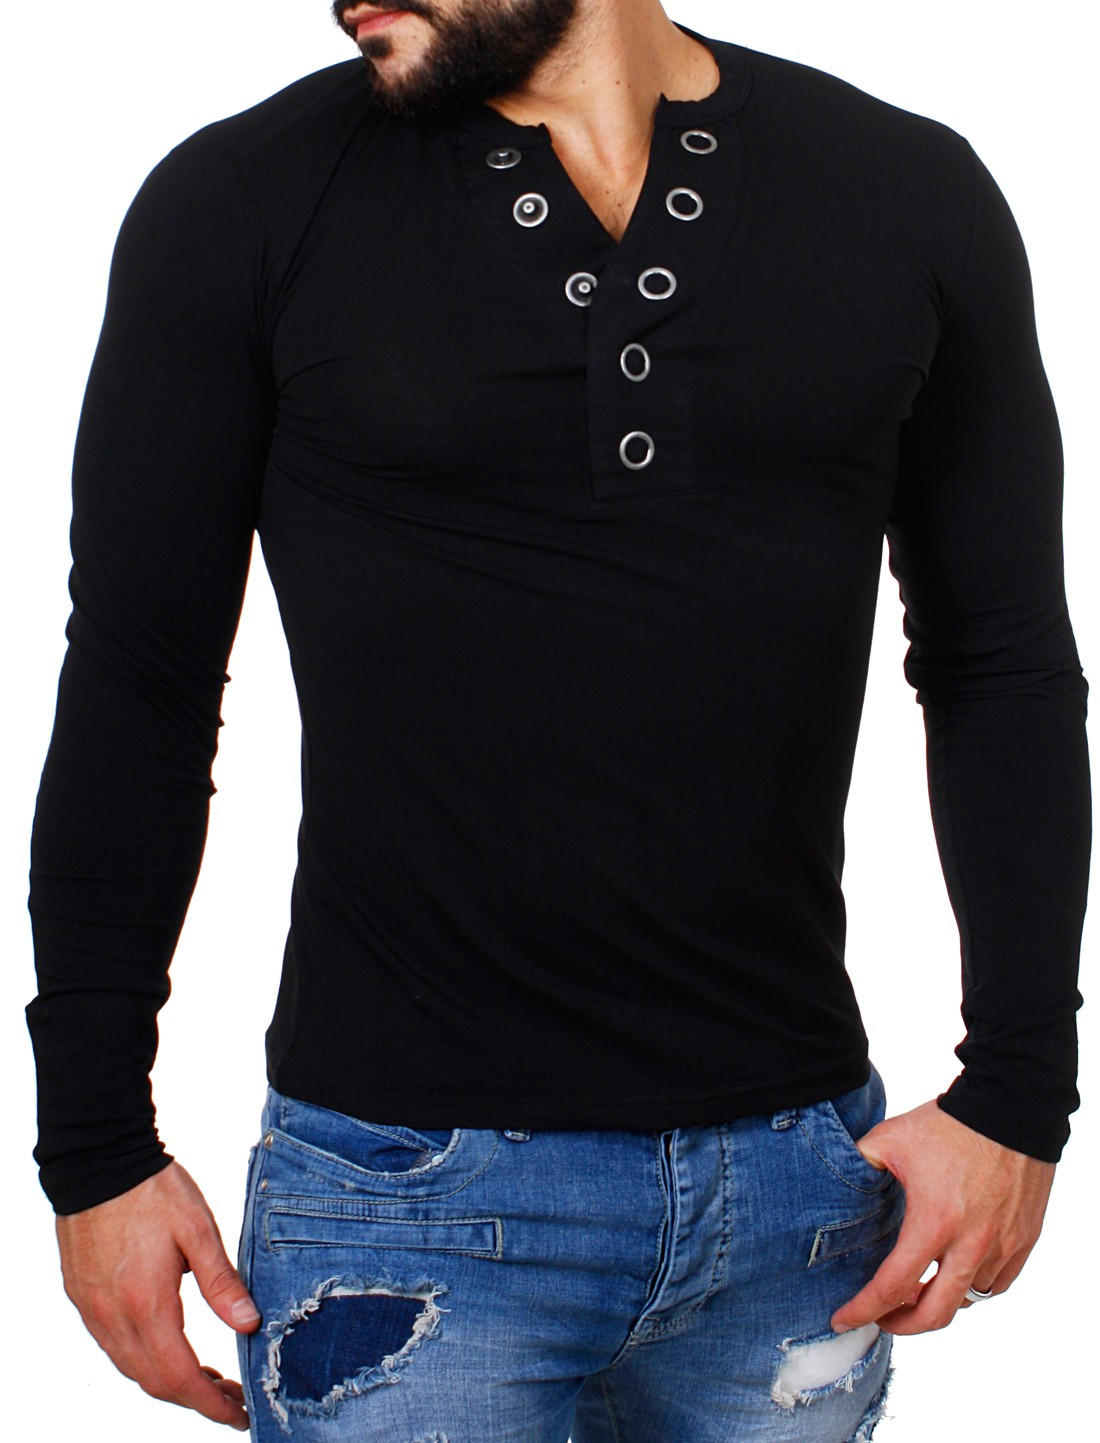 carisma herren longsleeve t shirt langarm knopfleiste bigbuttons slimfit stretch ebay. Black Bedroom Furniture Sets. Home Design Ideas